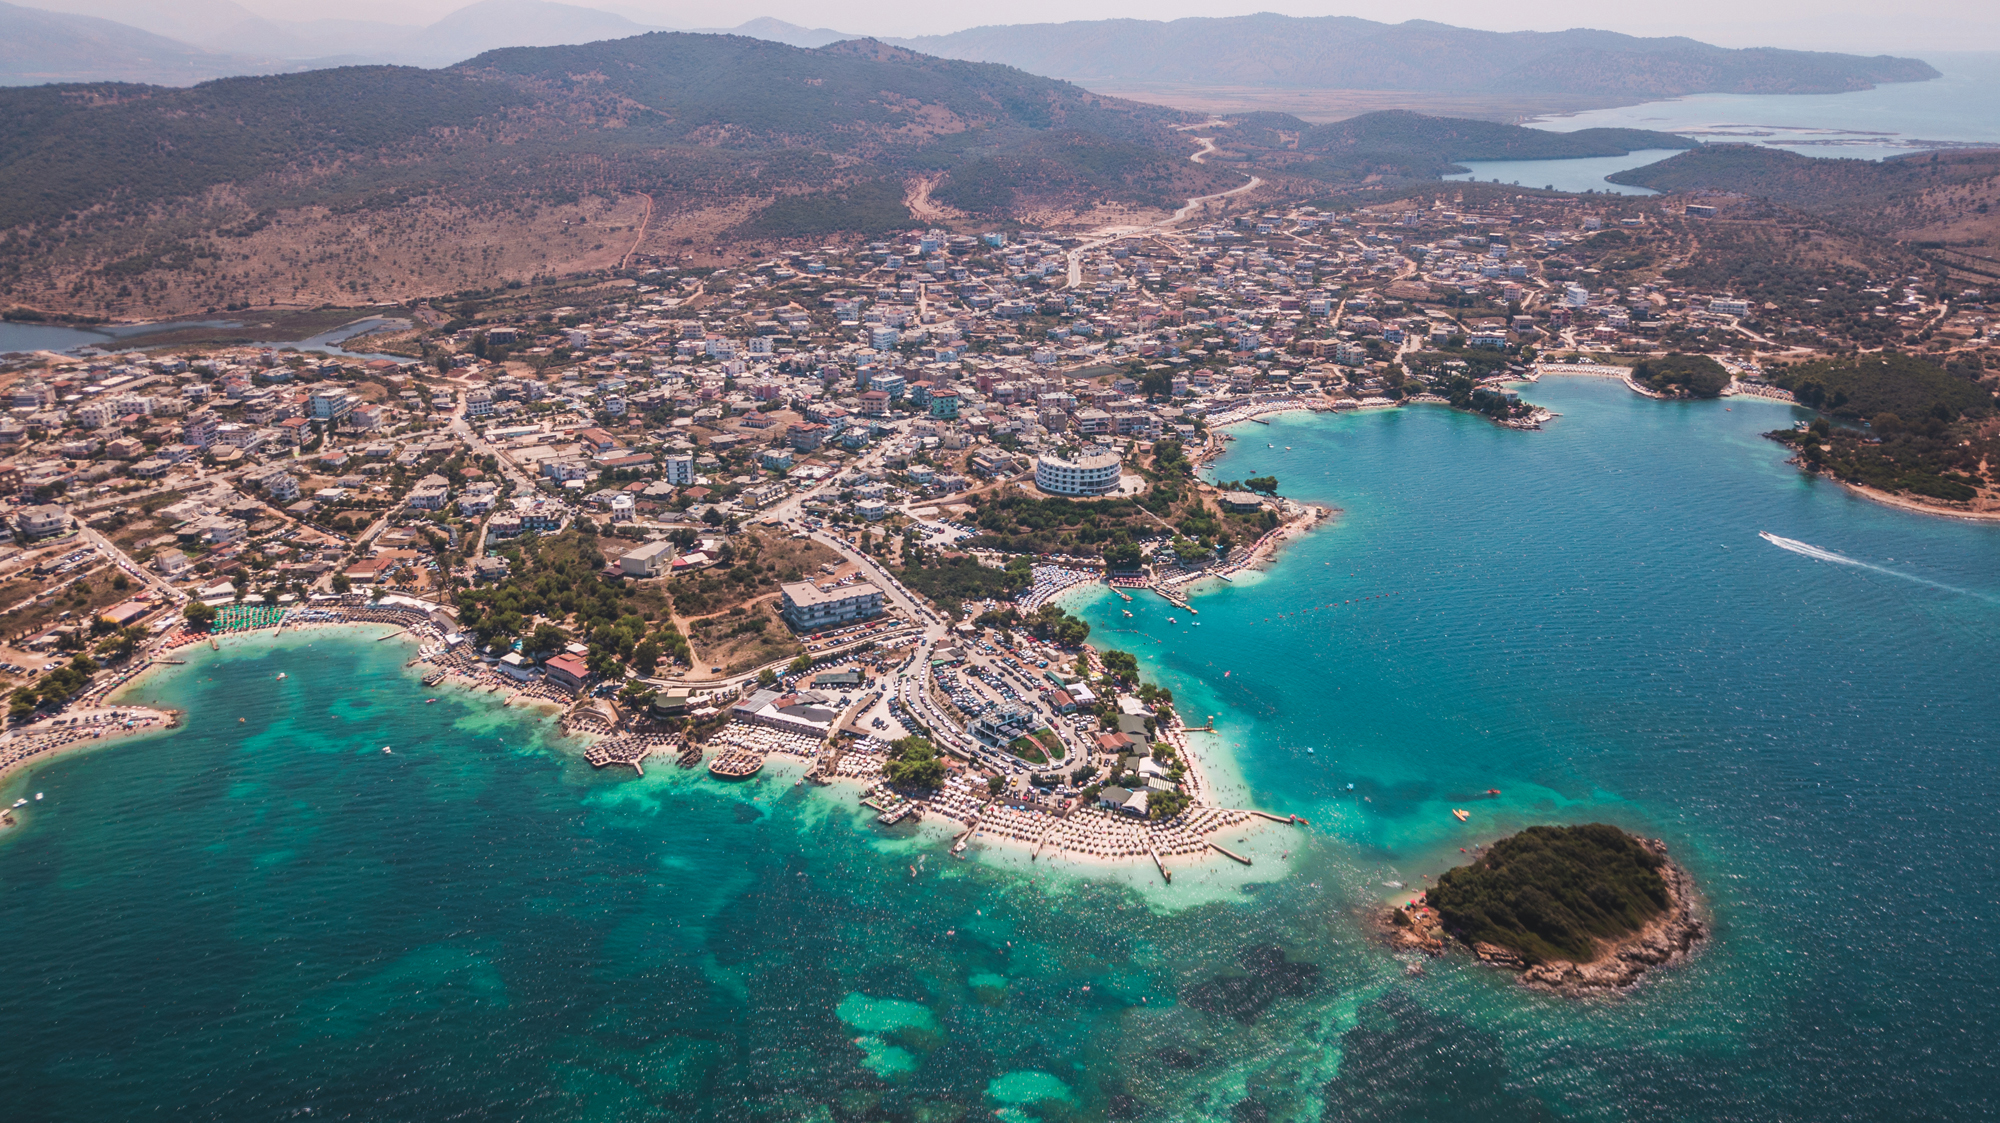 An aerial shot of Ksamil, Albania